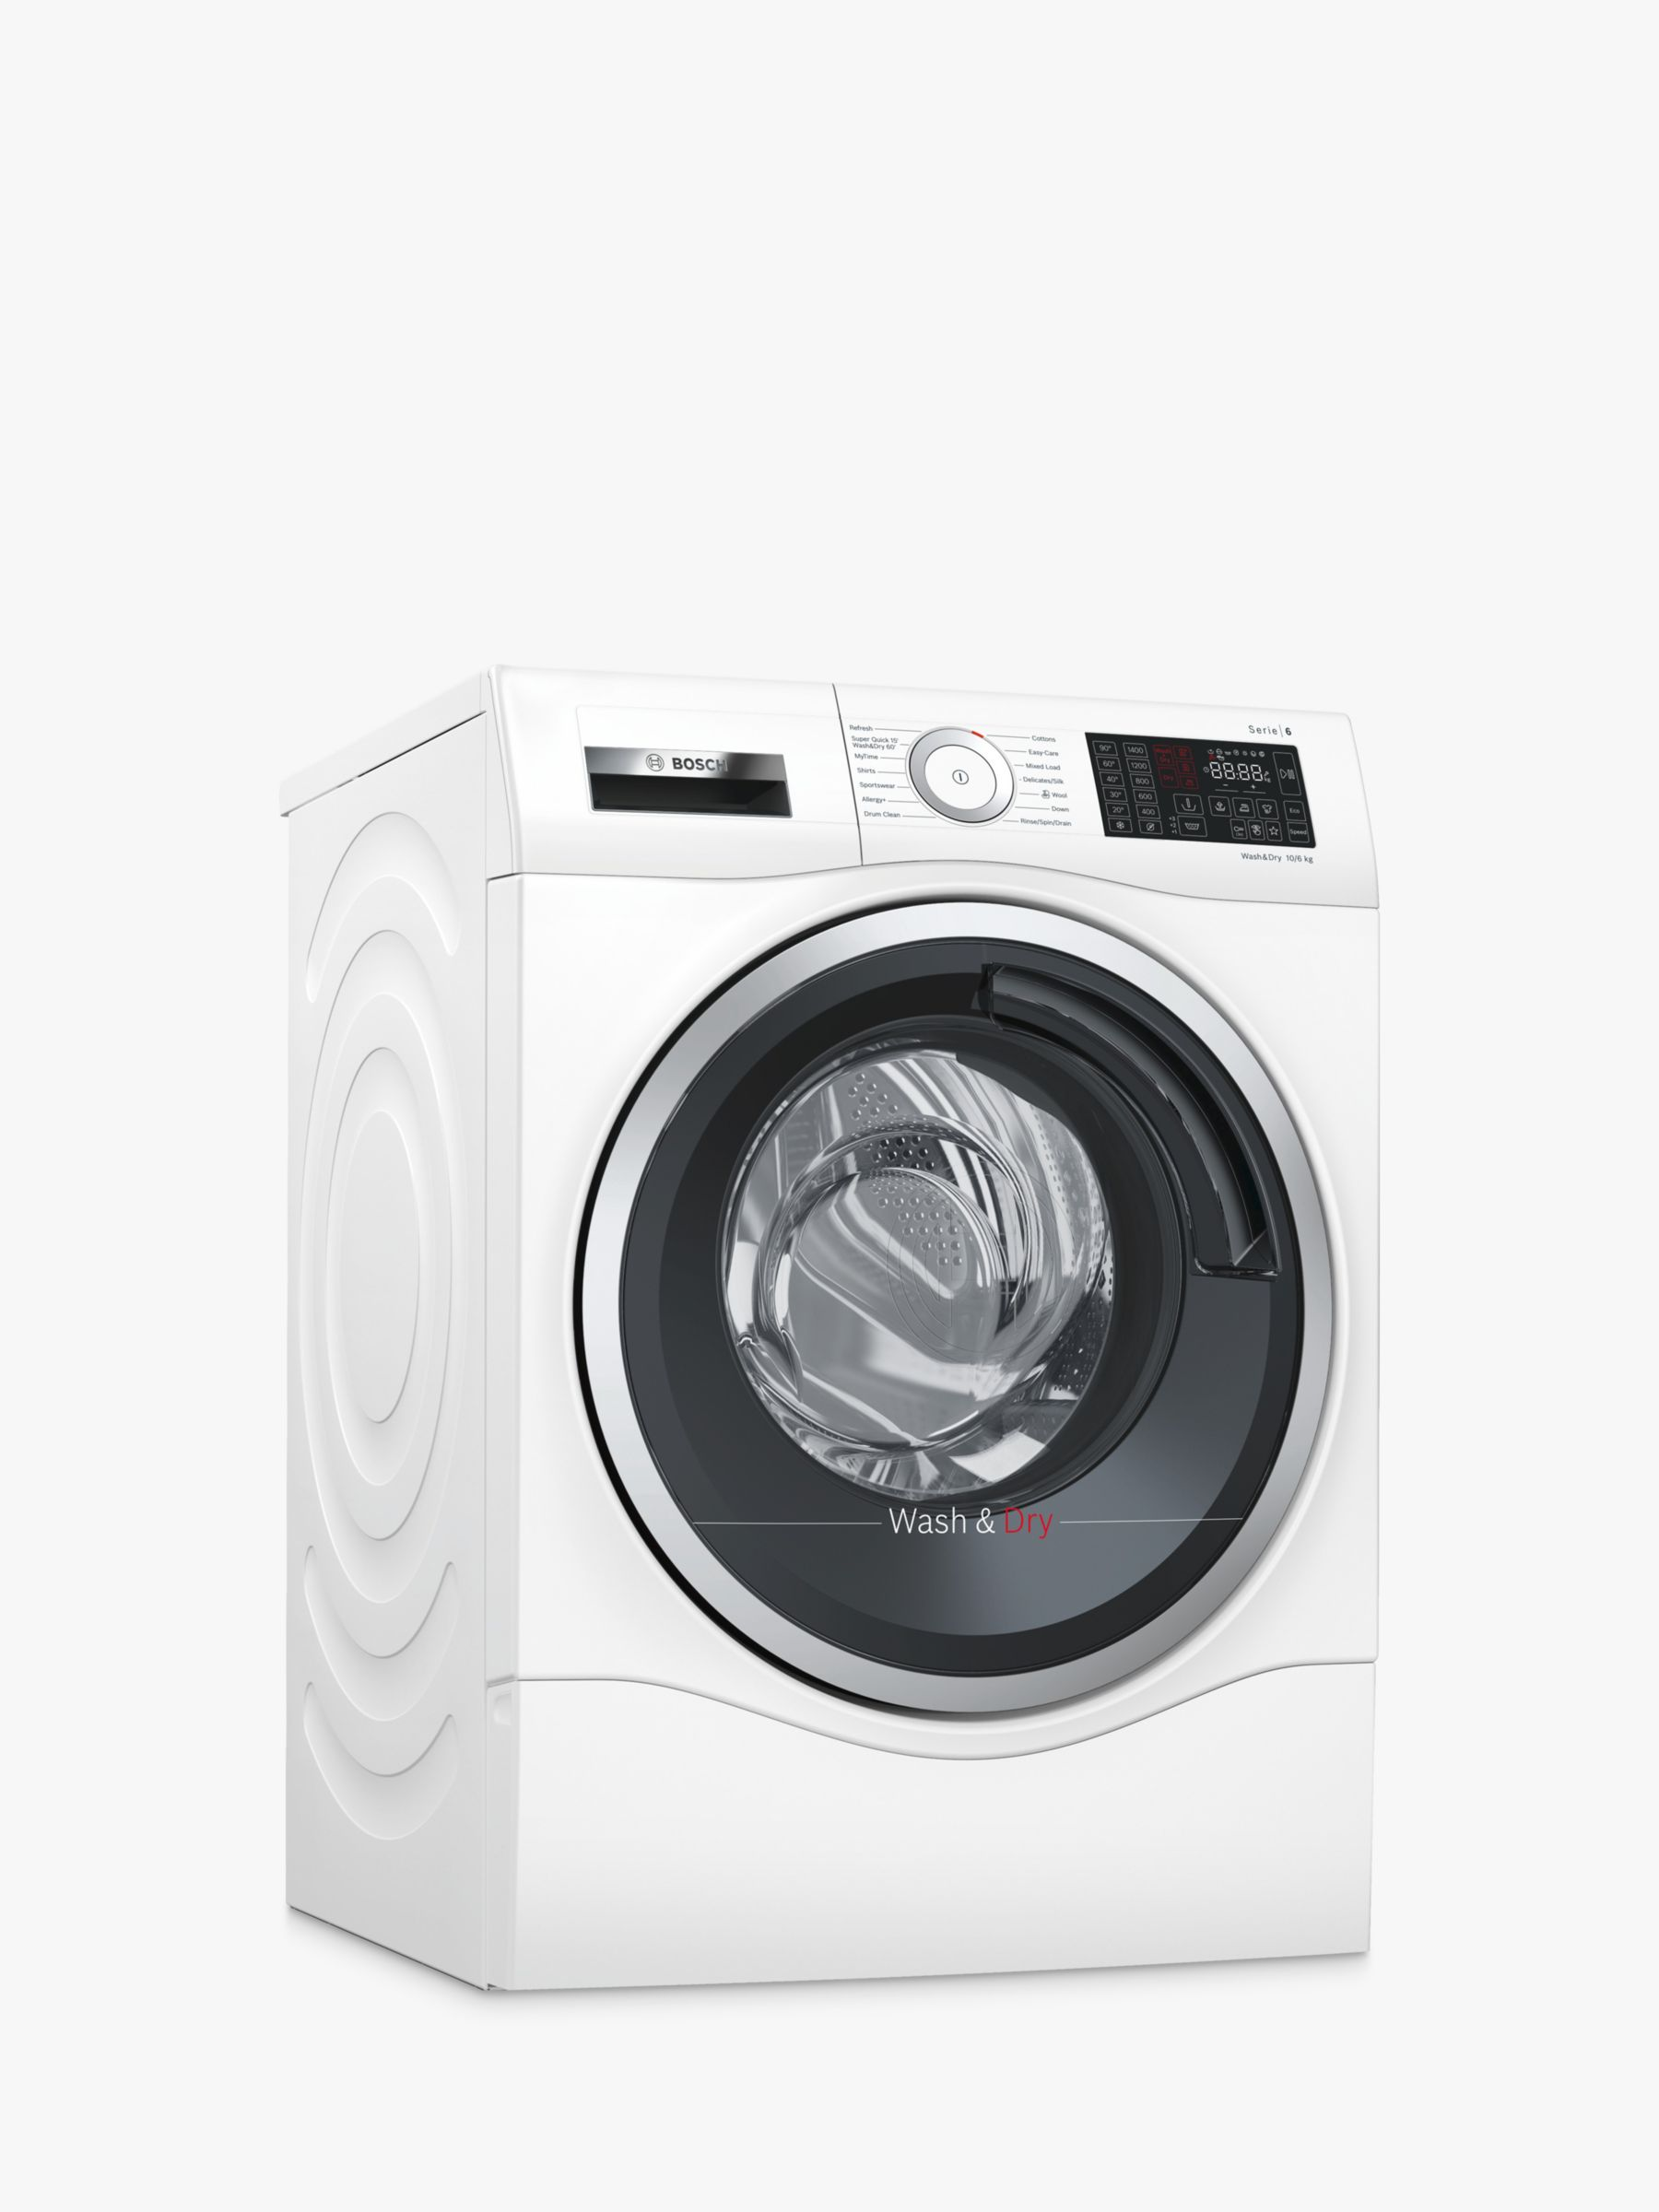 Bosch Bosch WDU28560GB Freestanding Washer Dryer, 10kg Wash/6kg Dry Load, A Energy Rating, 1400rpm Spin, White